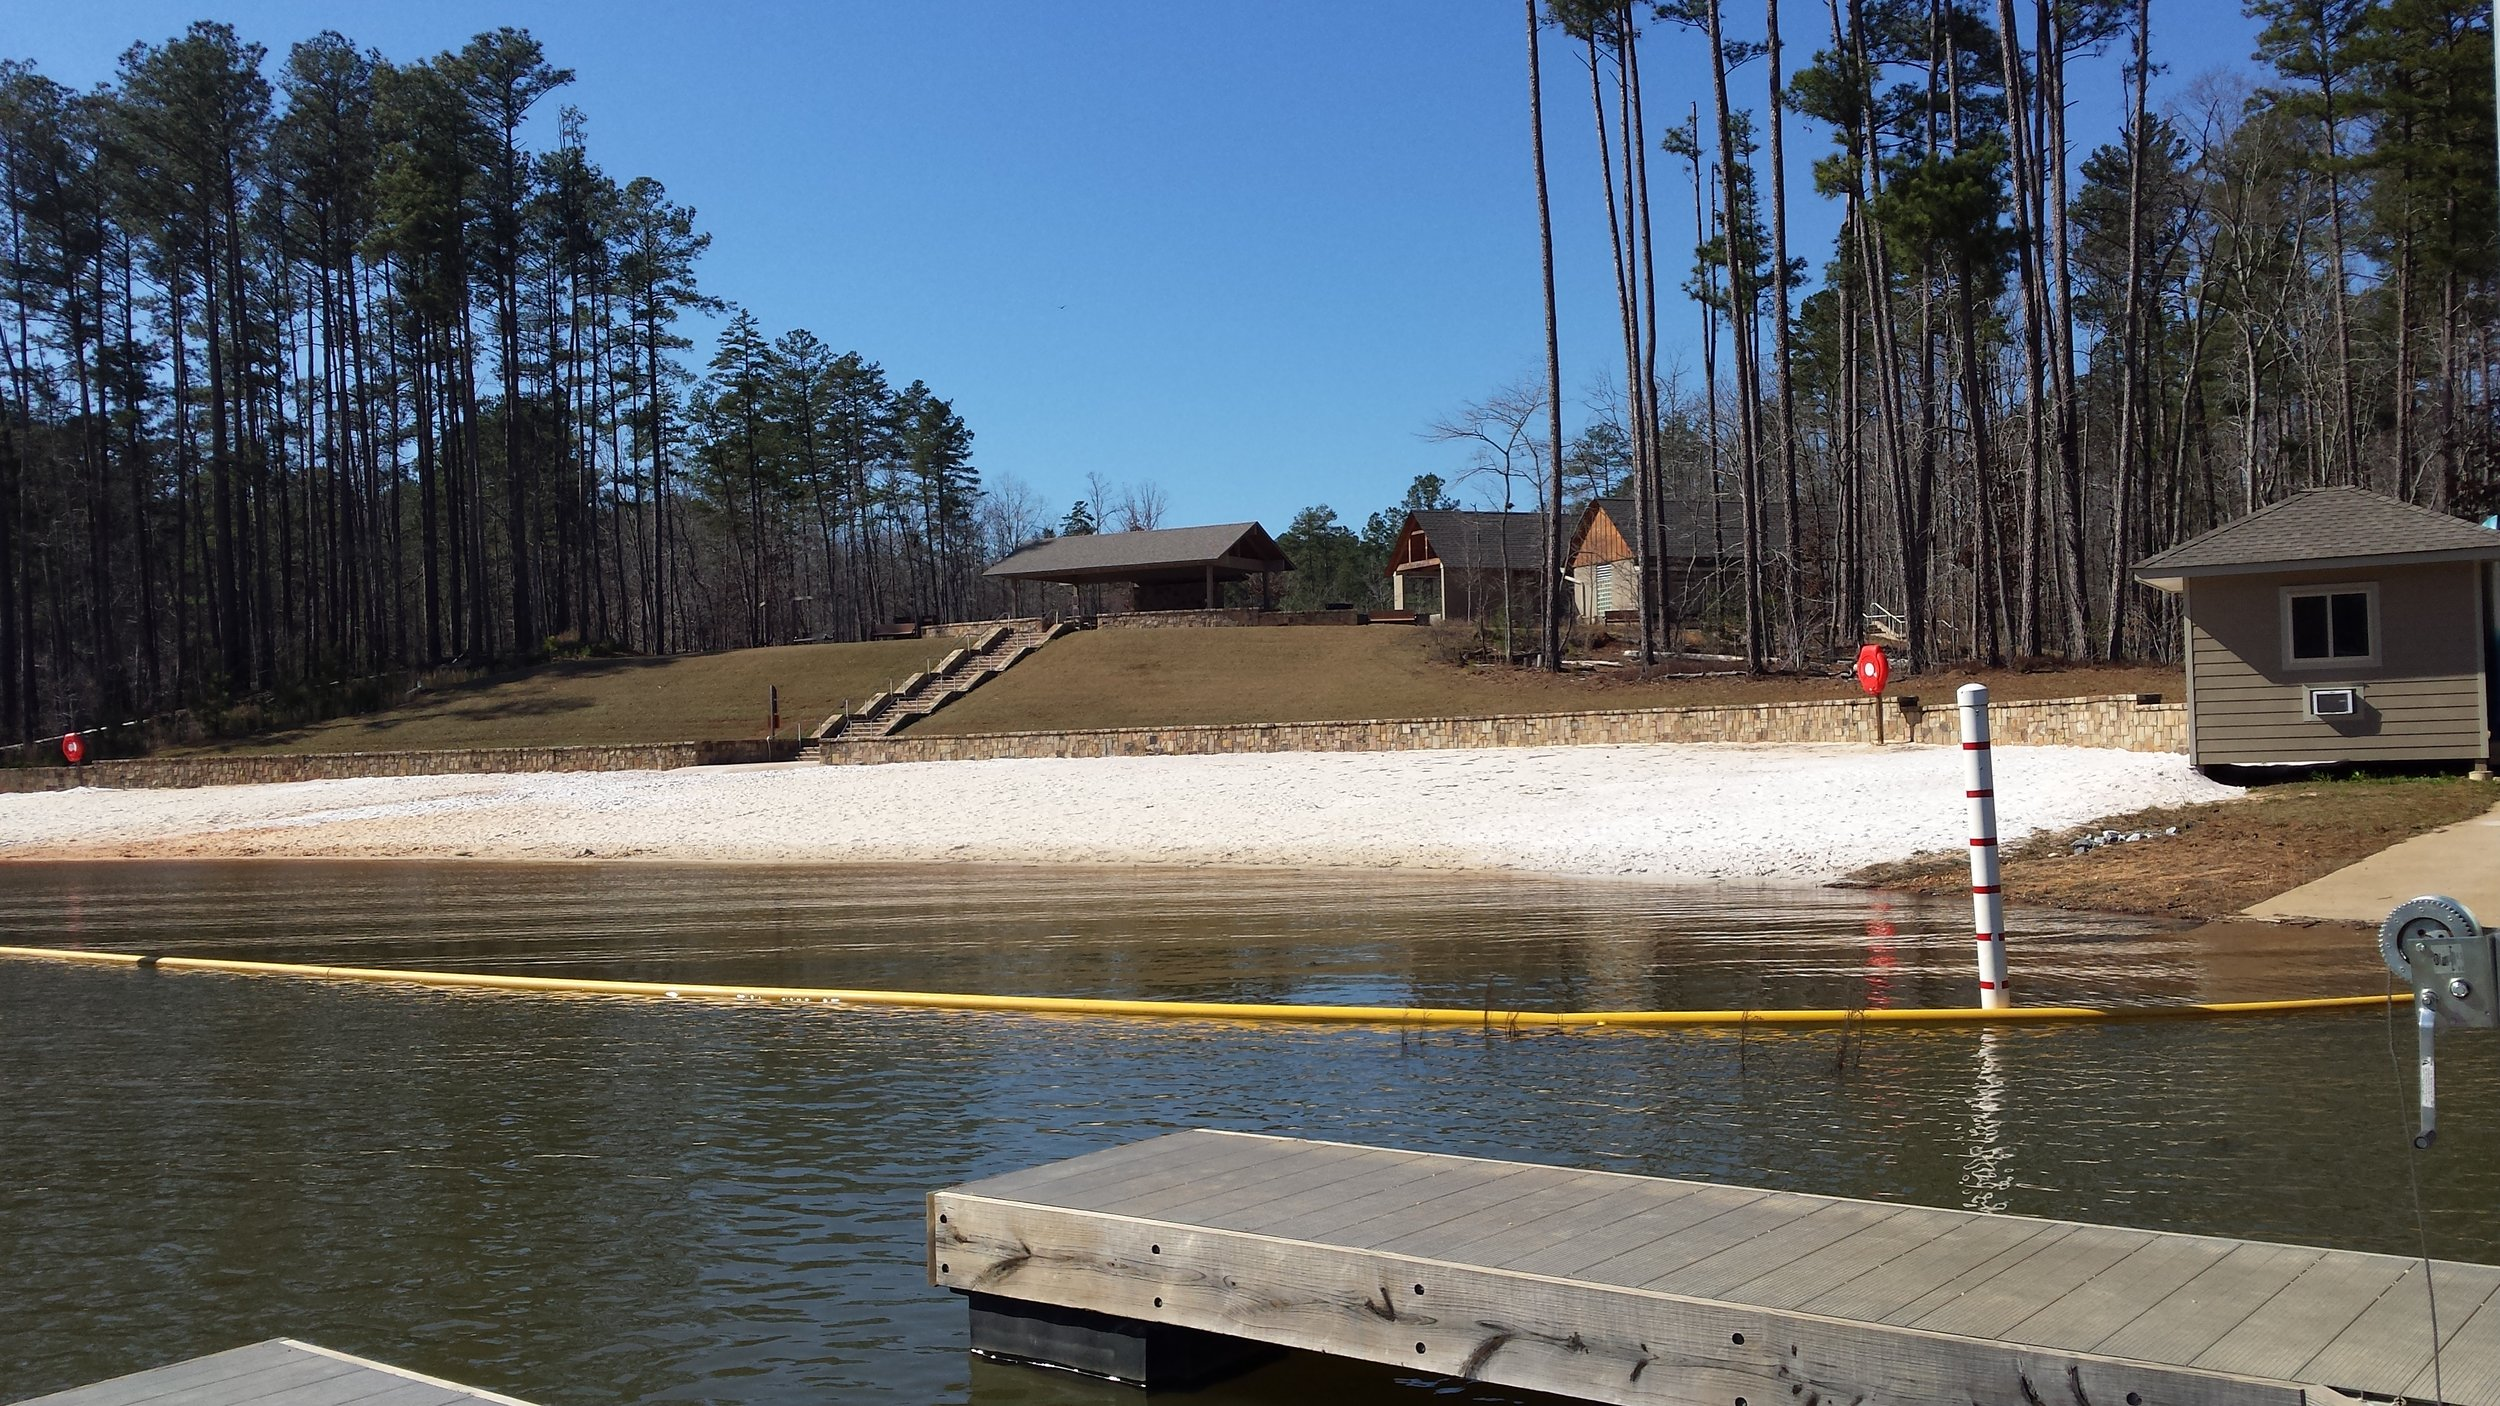 The beach complex at Don Carter State Park, Gainesville, Georgia offers kayak rentals!